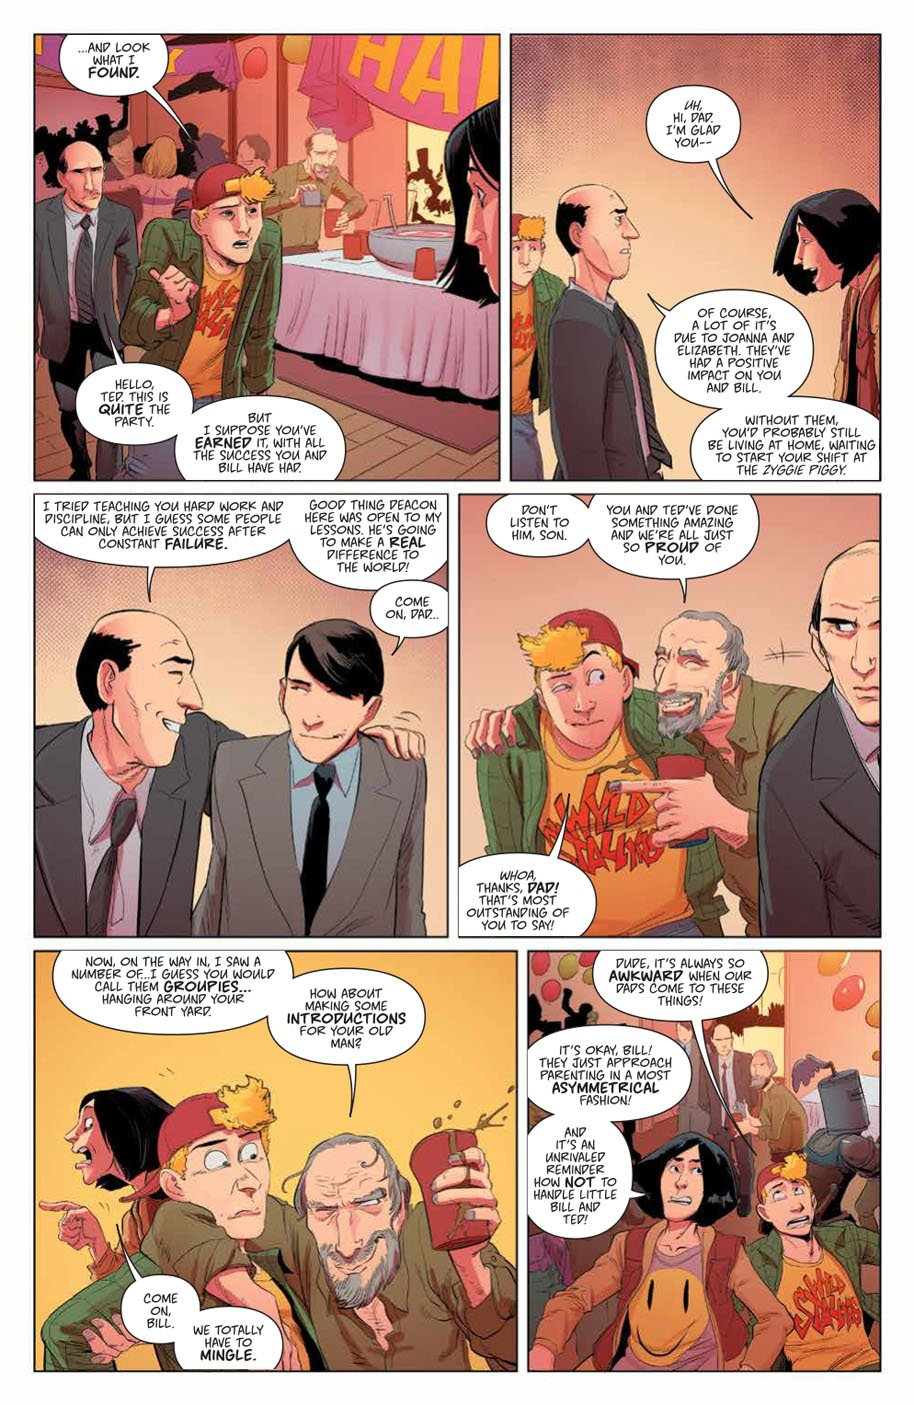 Bill & Ted Save the Universe 1 page 10